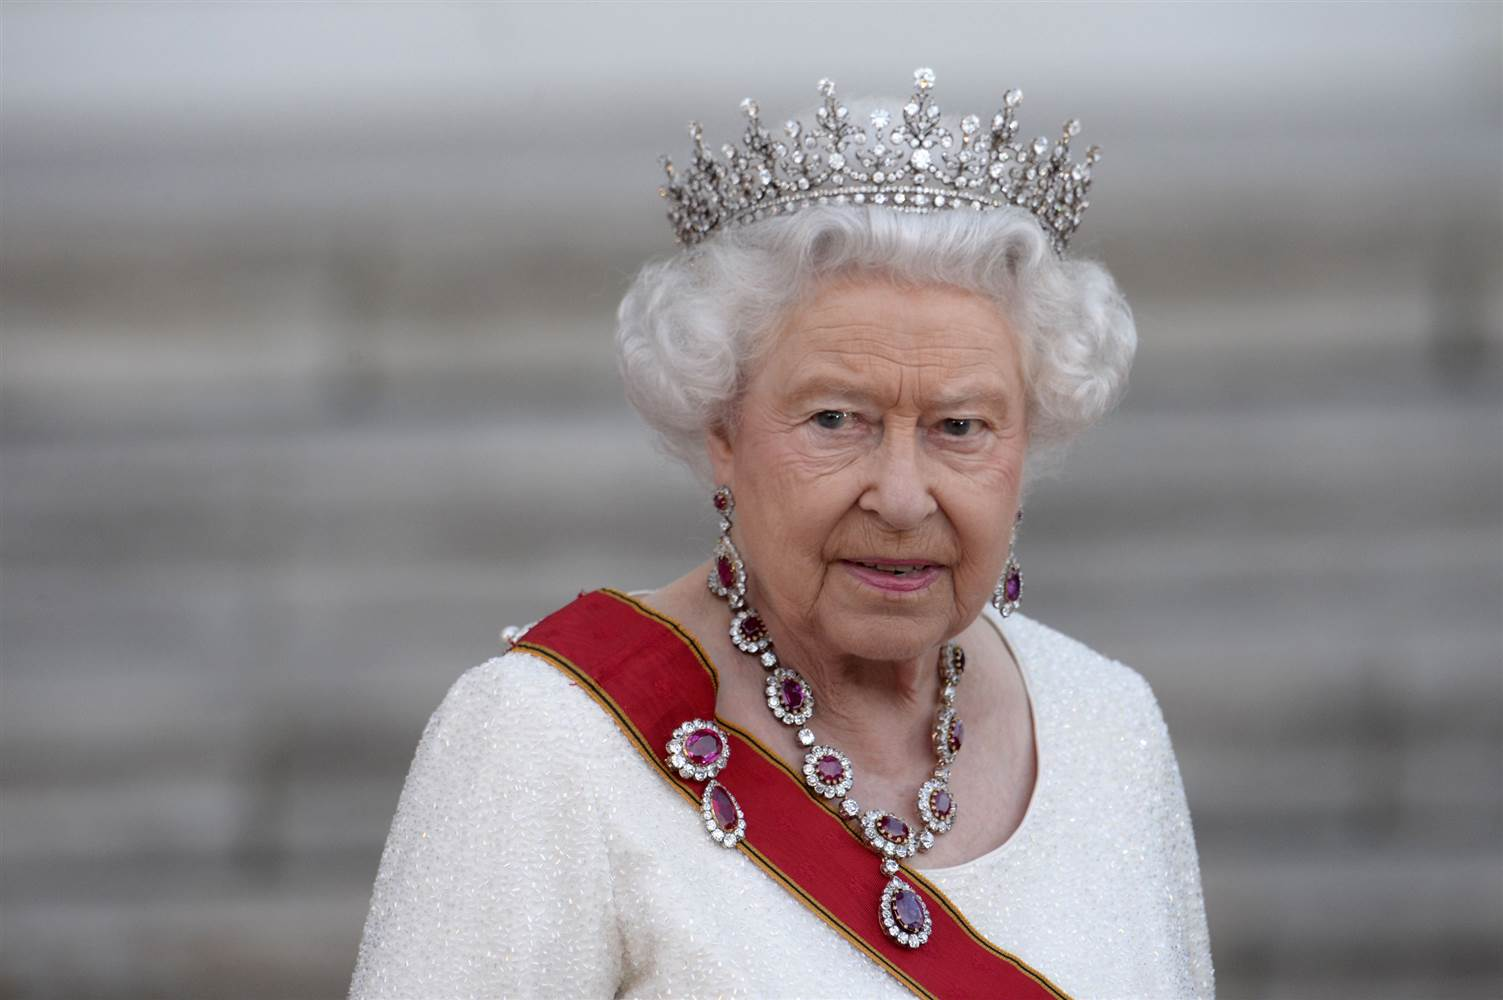 QUEEN RESIGNS FOLLOWING BREXIT